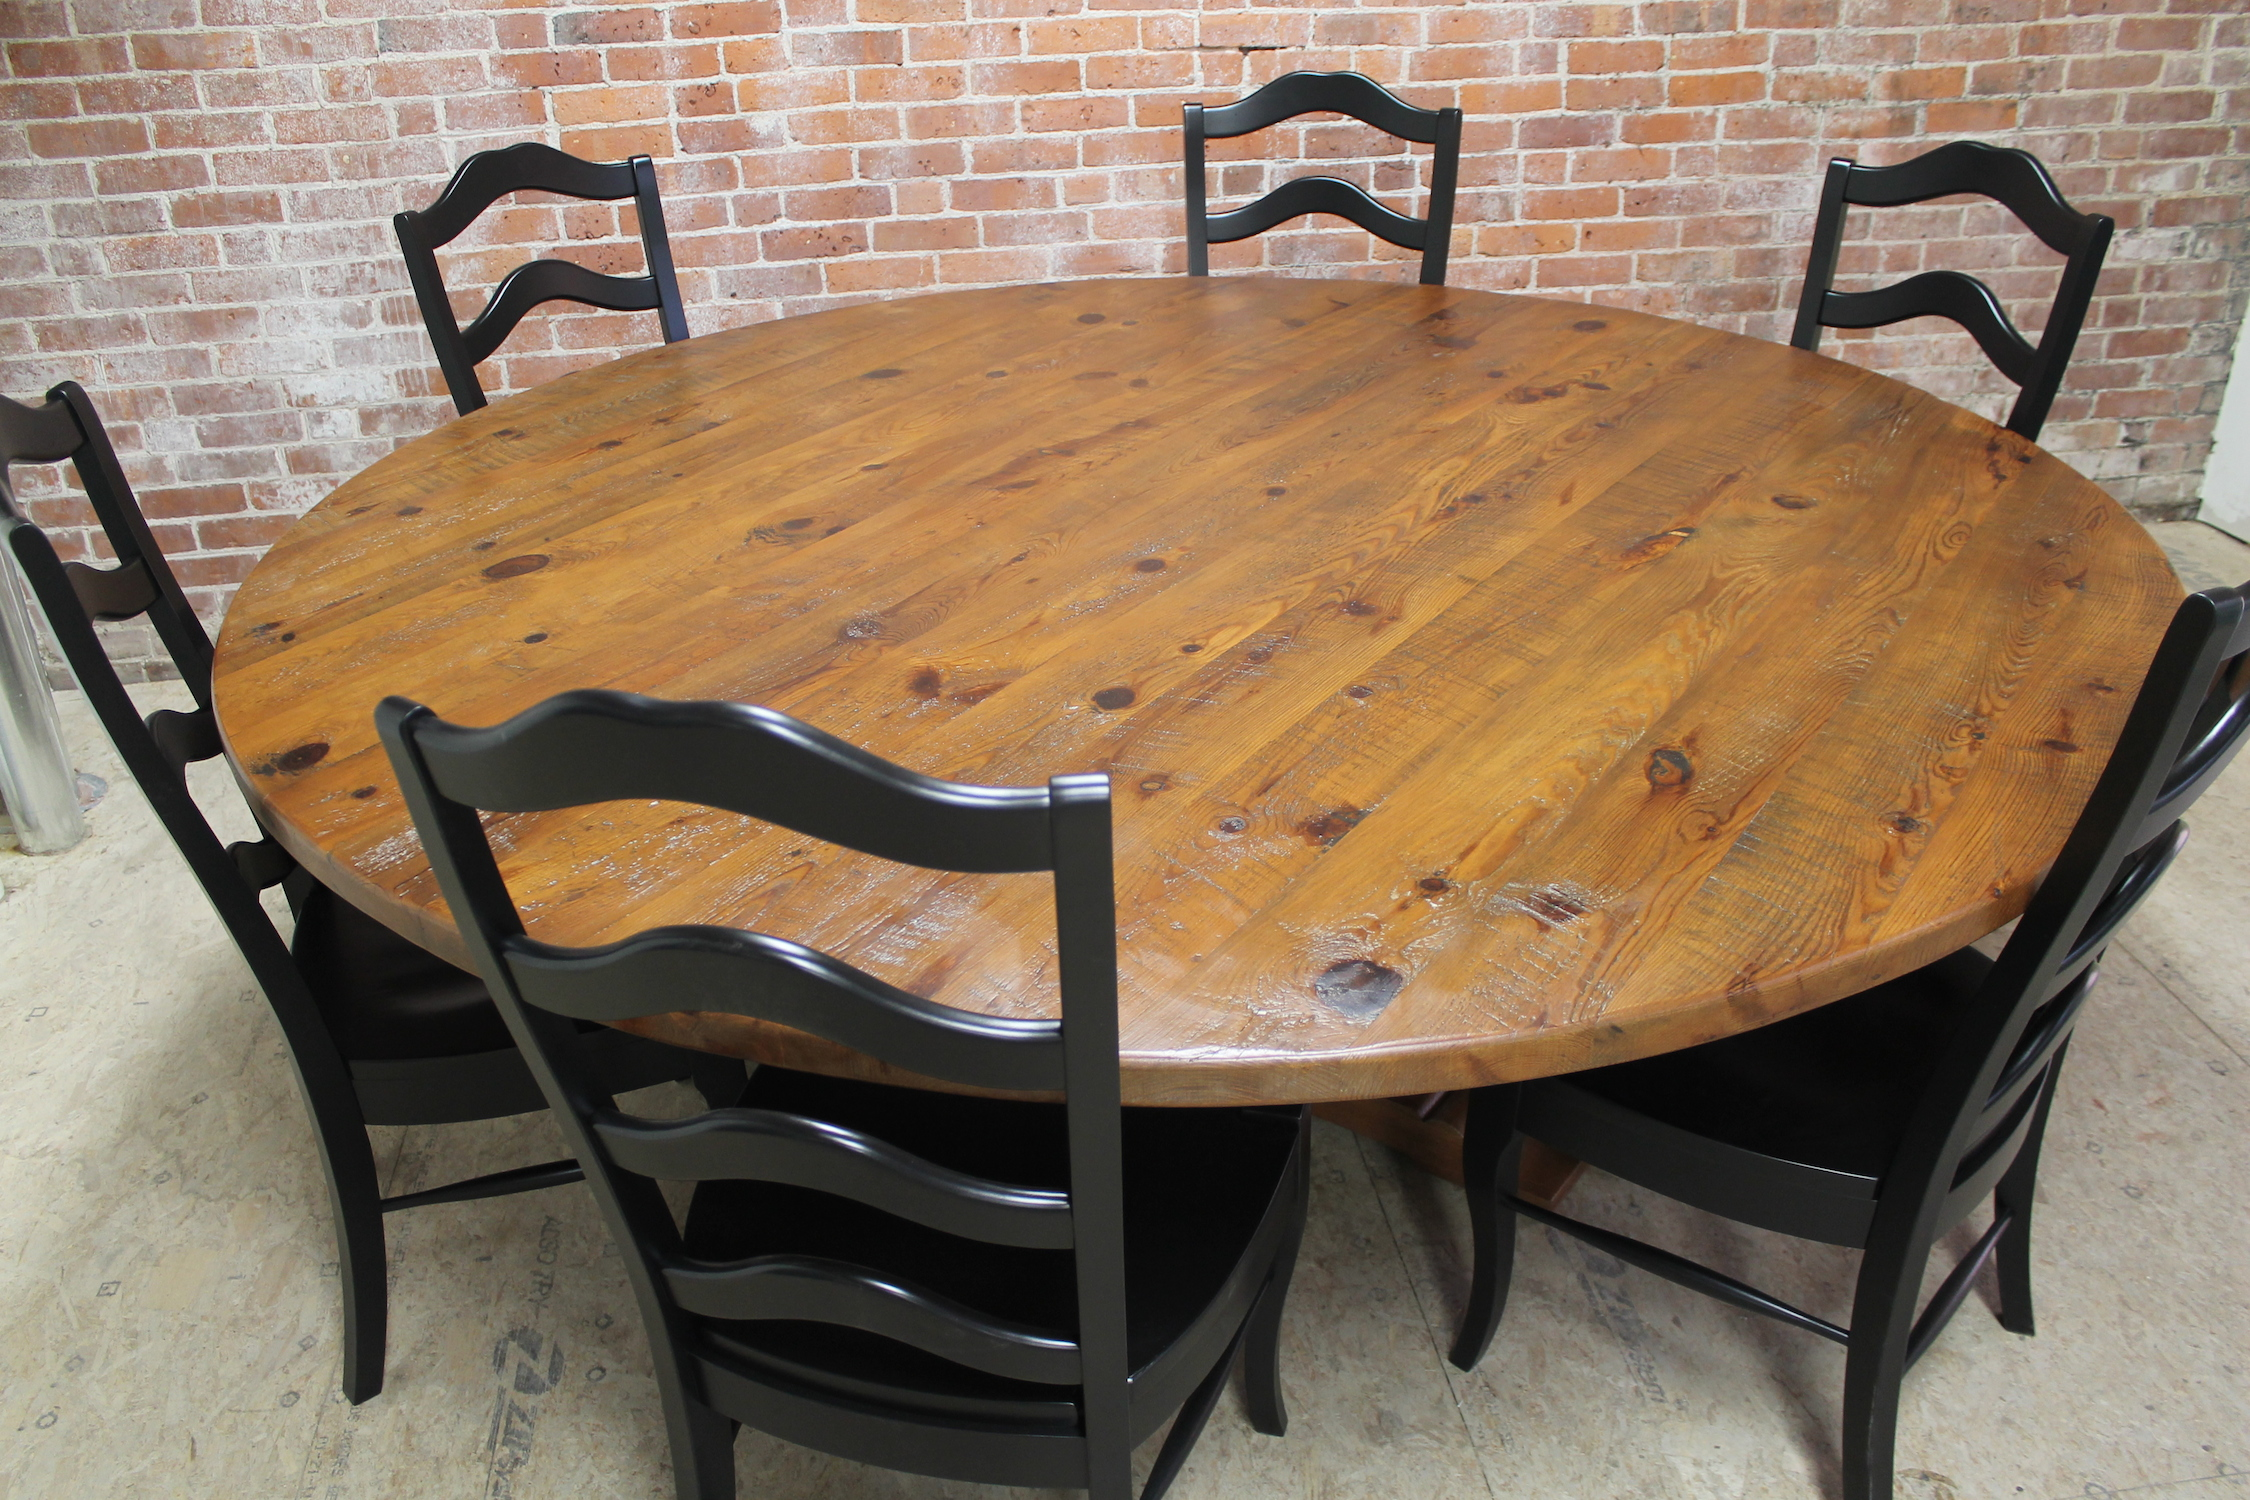 Big dining room tables for sale 6 inspiration for 10 person dining table for sale